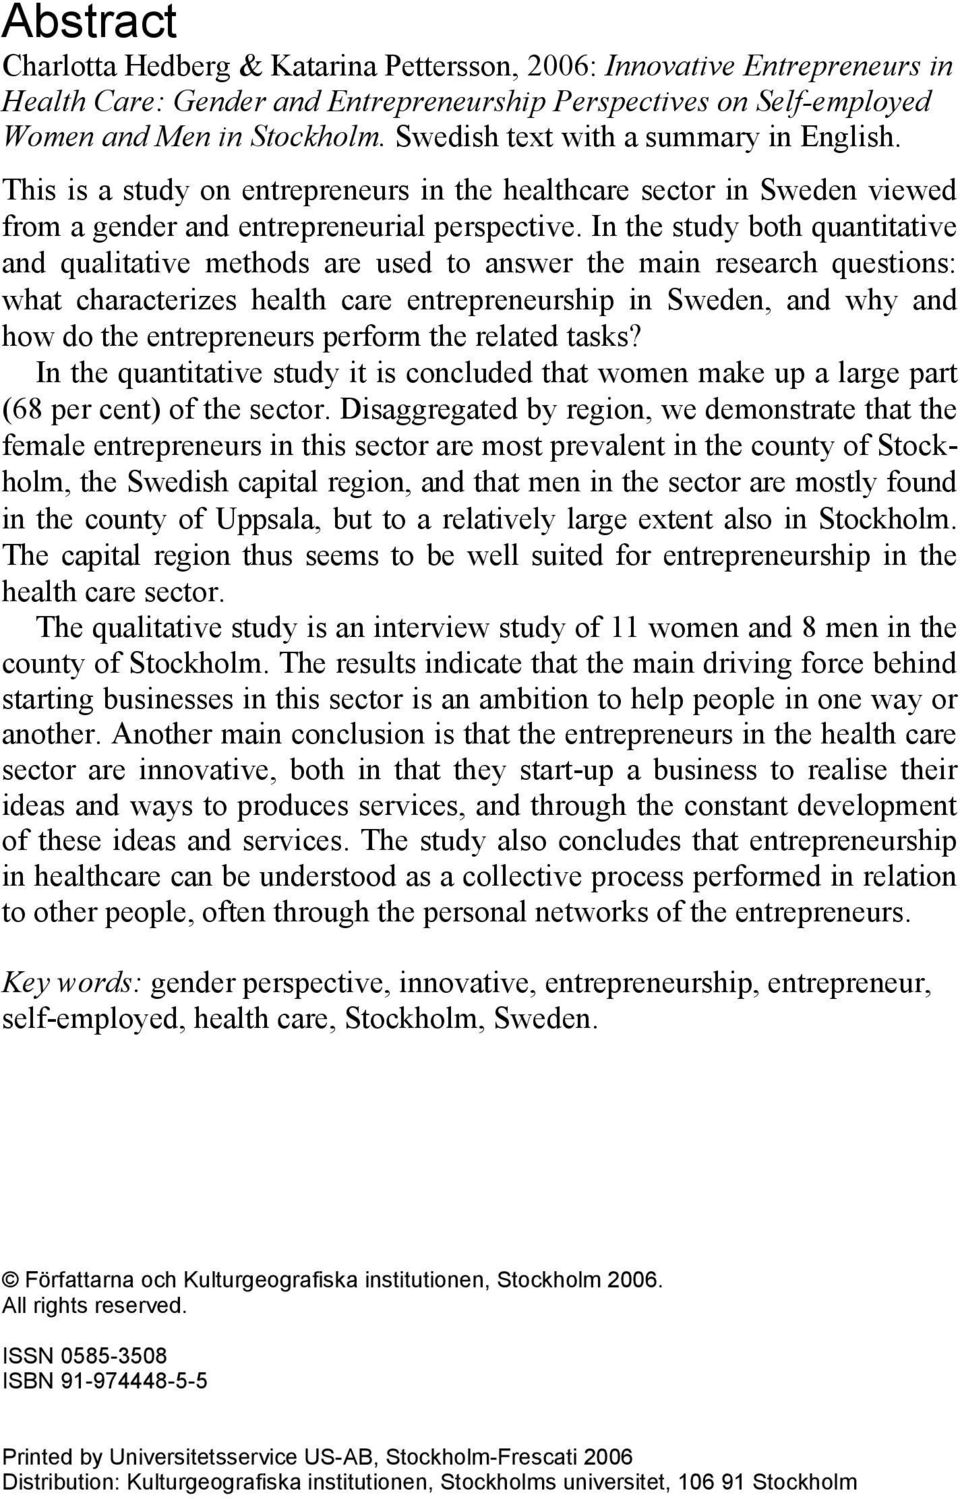 In the study both quantitative and qualitative methods are used to answer the main research questions: what characterizes health care entrepreneurship in Sweden, and why and how do the entrepreneurs